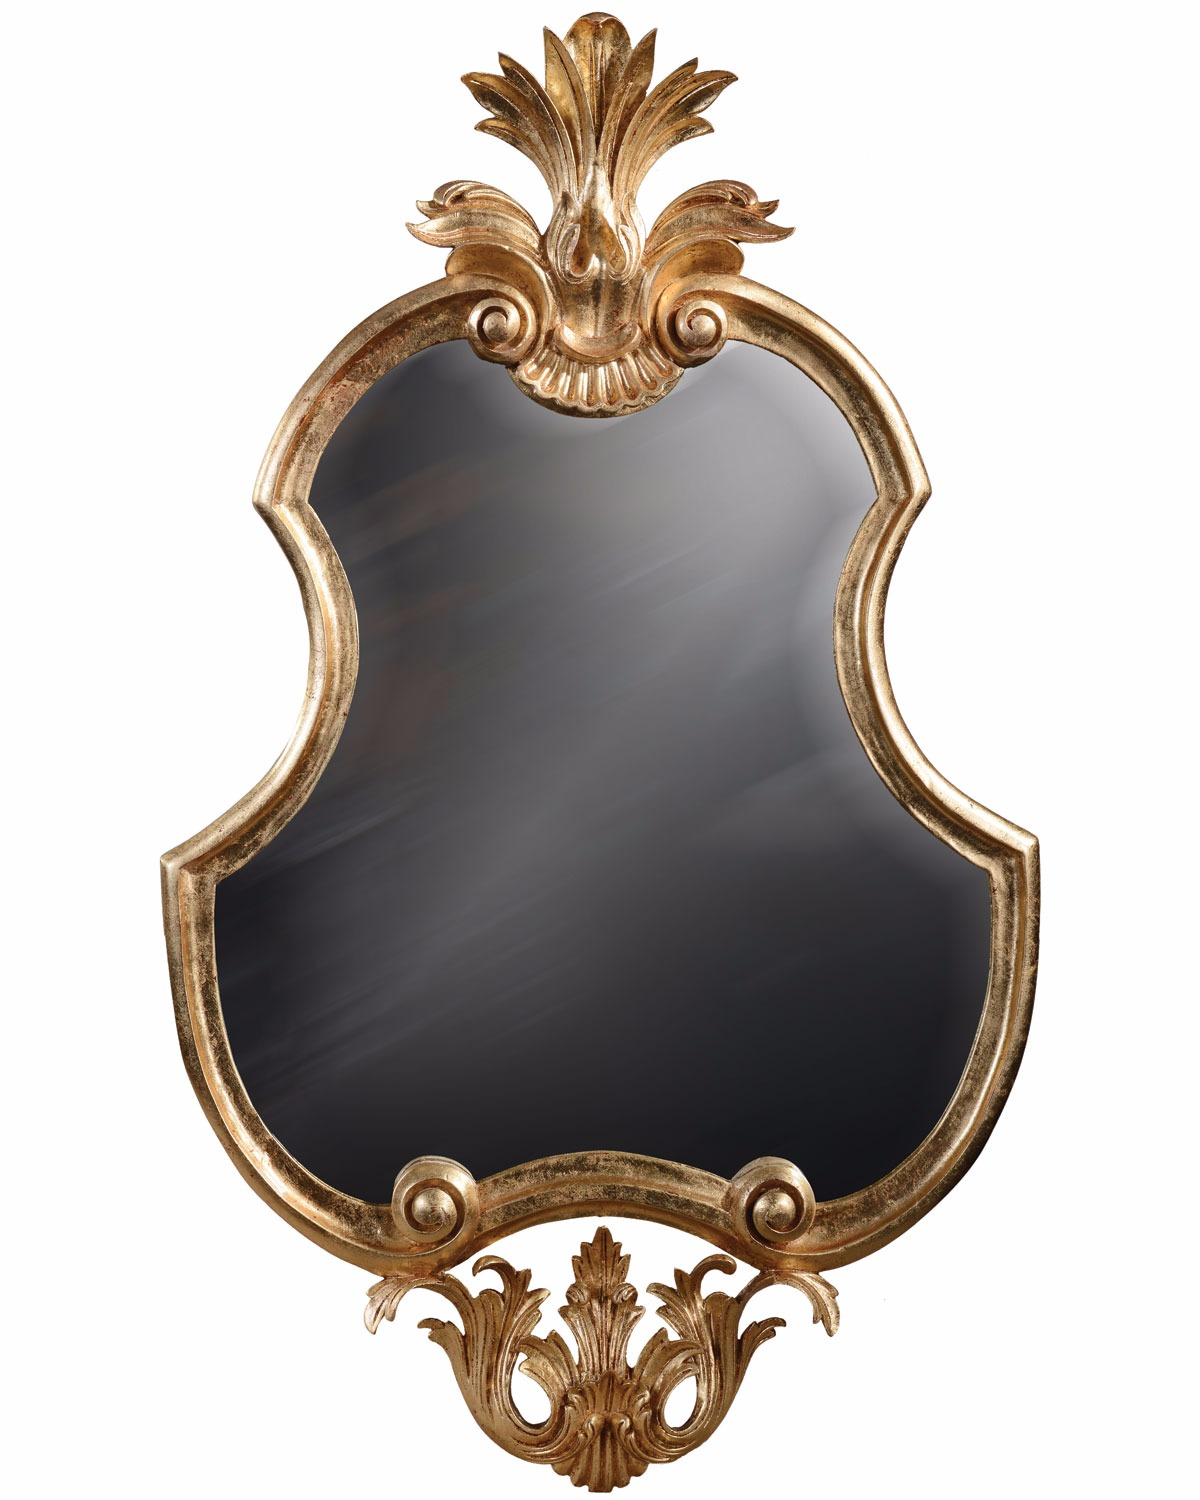 Hand carved French style gilded mirror - 95cm